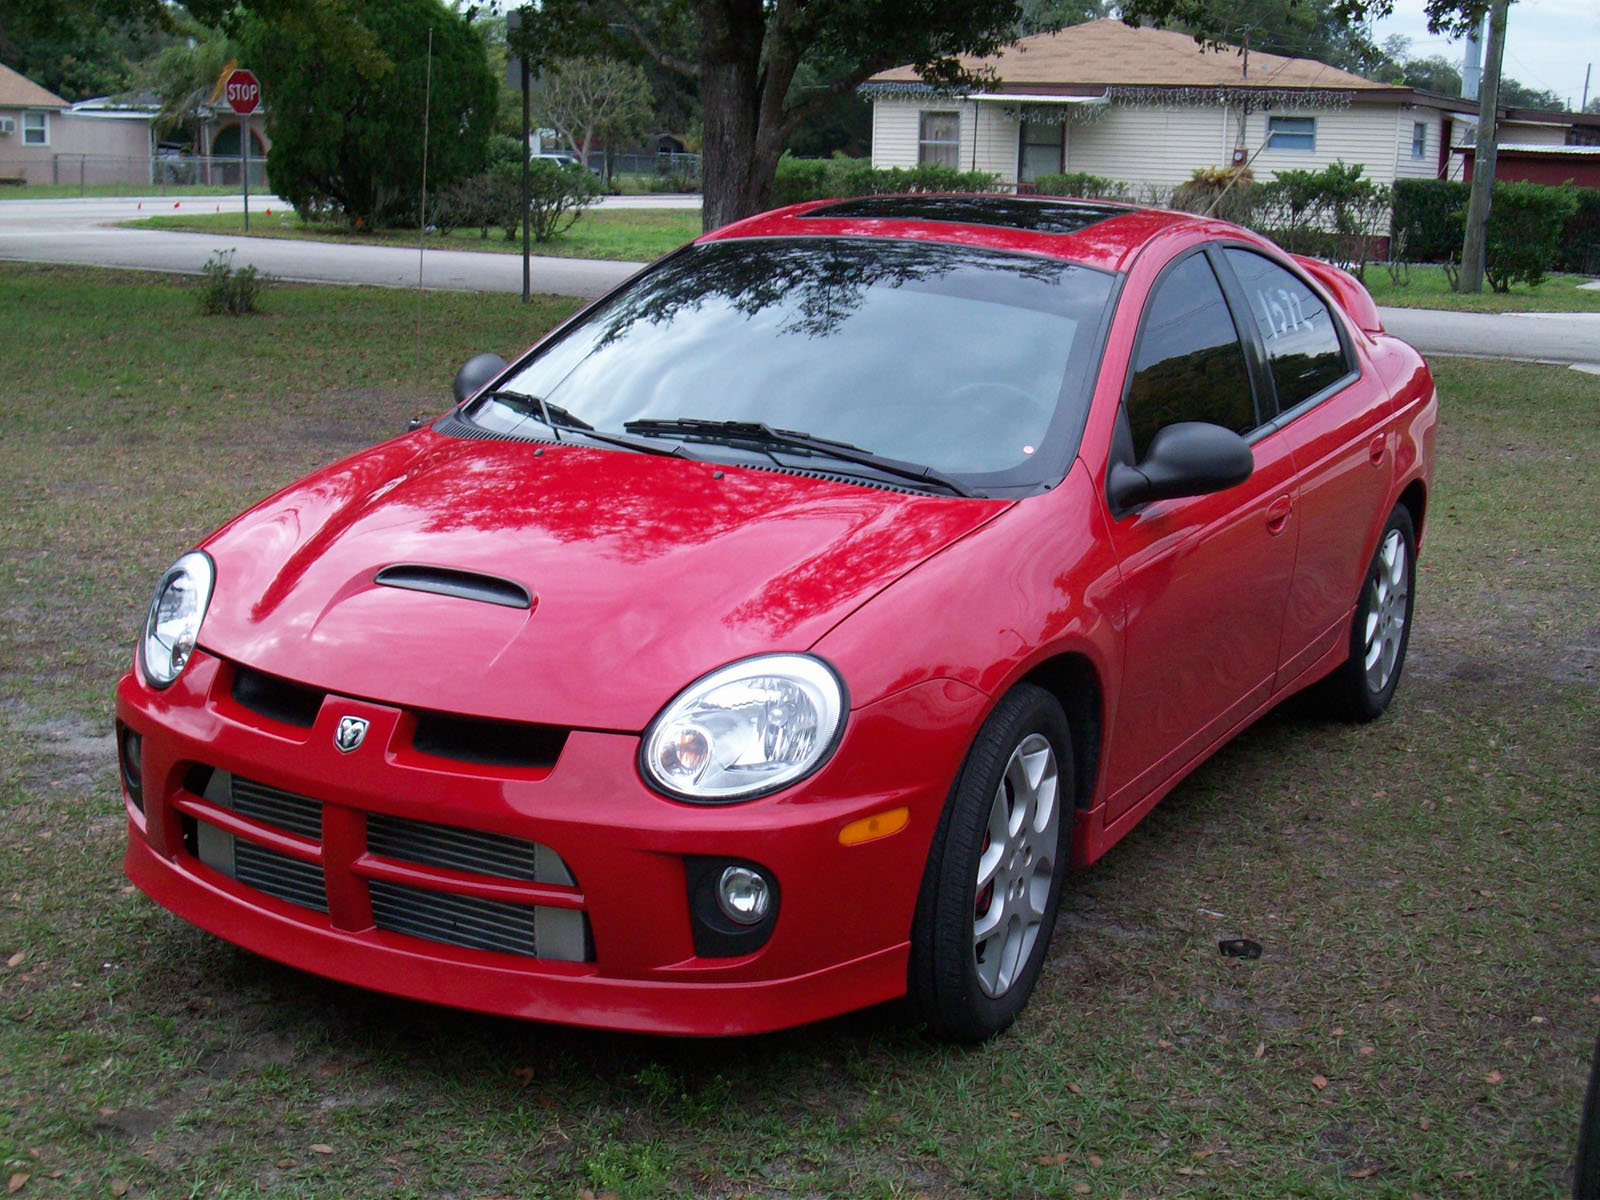 neon srt4 acr 2005 dodge srt 4 black salvage parts car. Black Bedroom Furniture Sets. Home Design Ideas